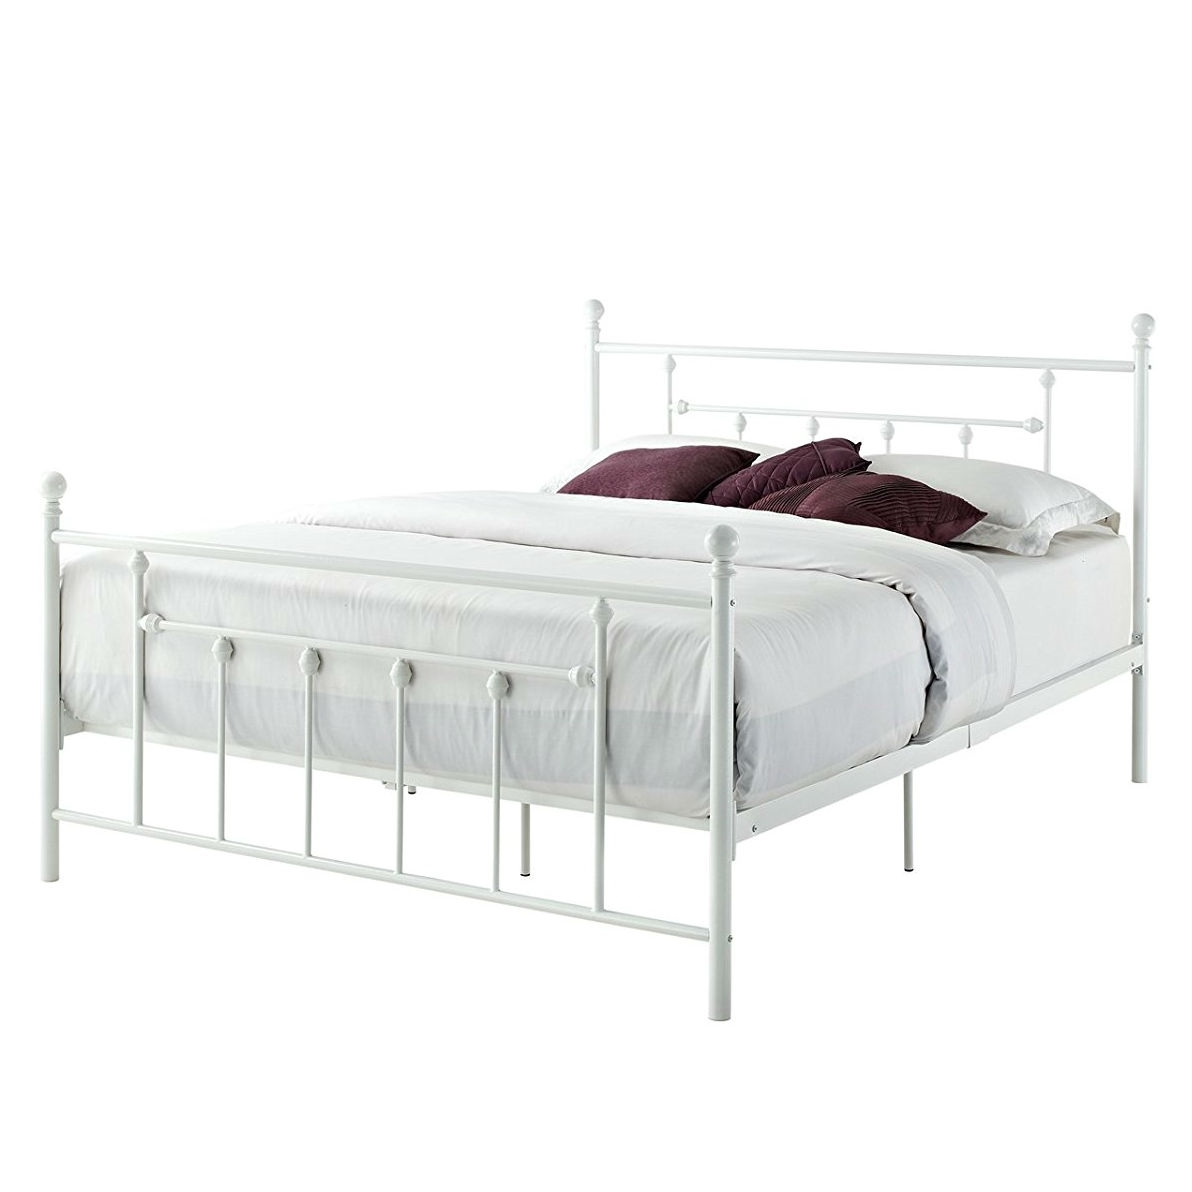 White Platform Bed Without Headboard Queen Size White Metal Platform Bed Frame With Headboard And Footboard